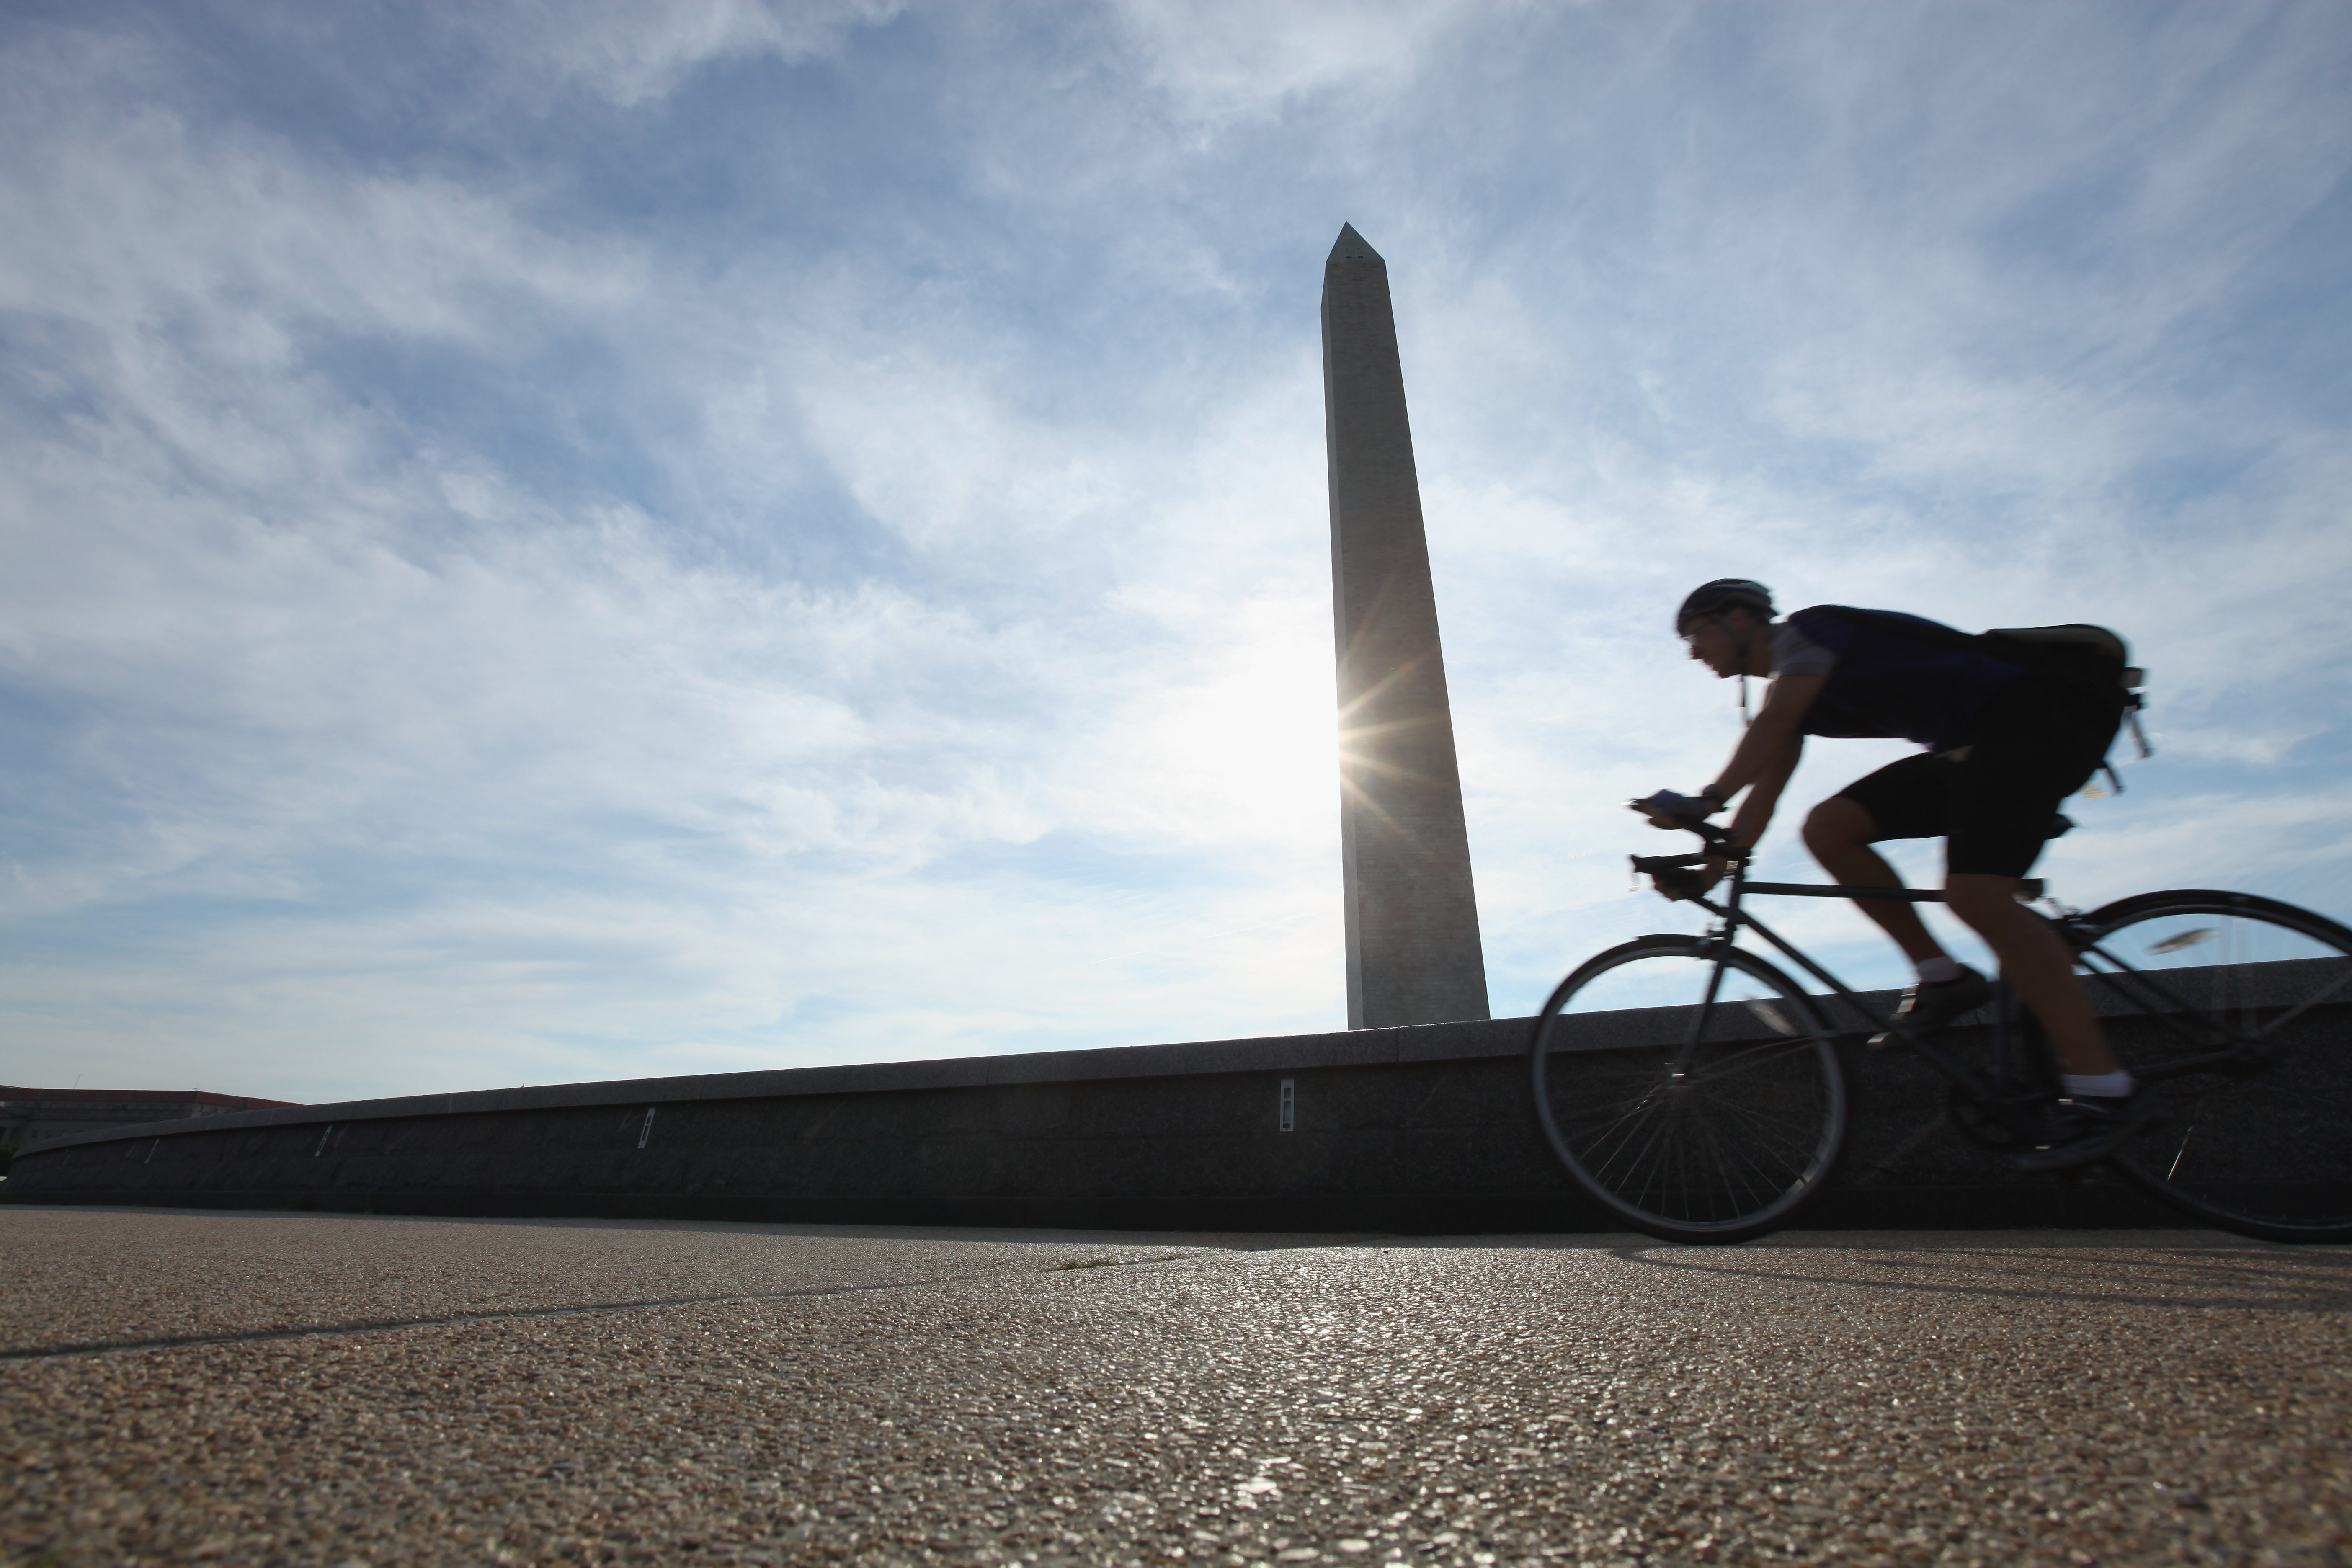 Everything you need to know about biking in D.C.